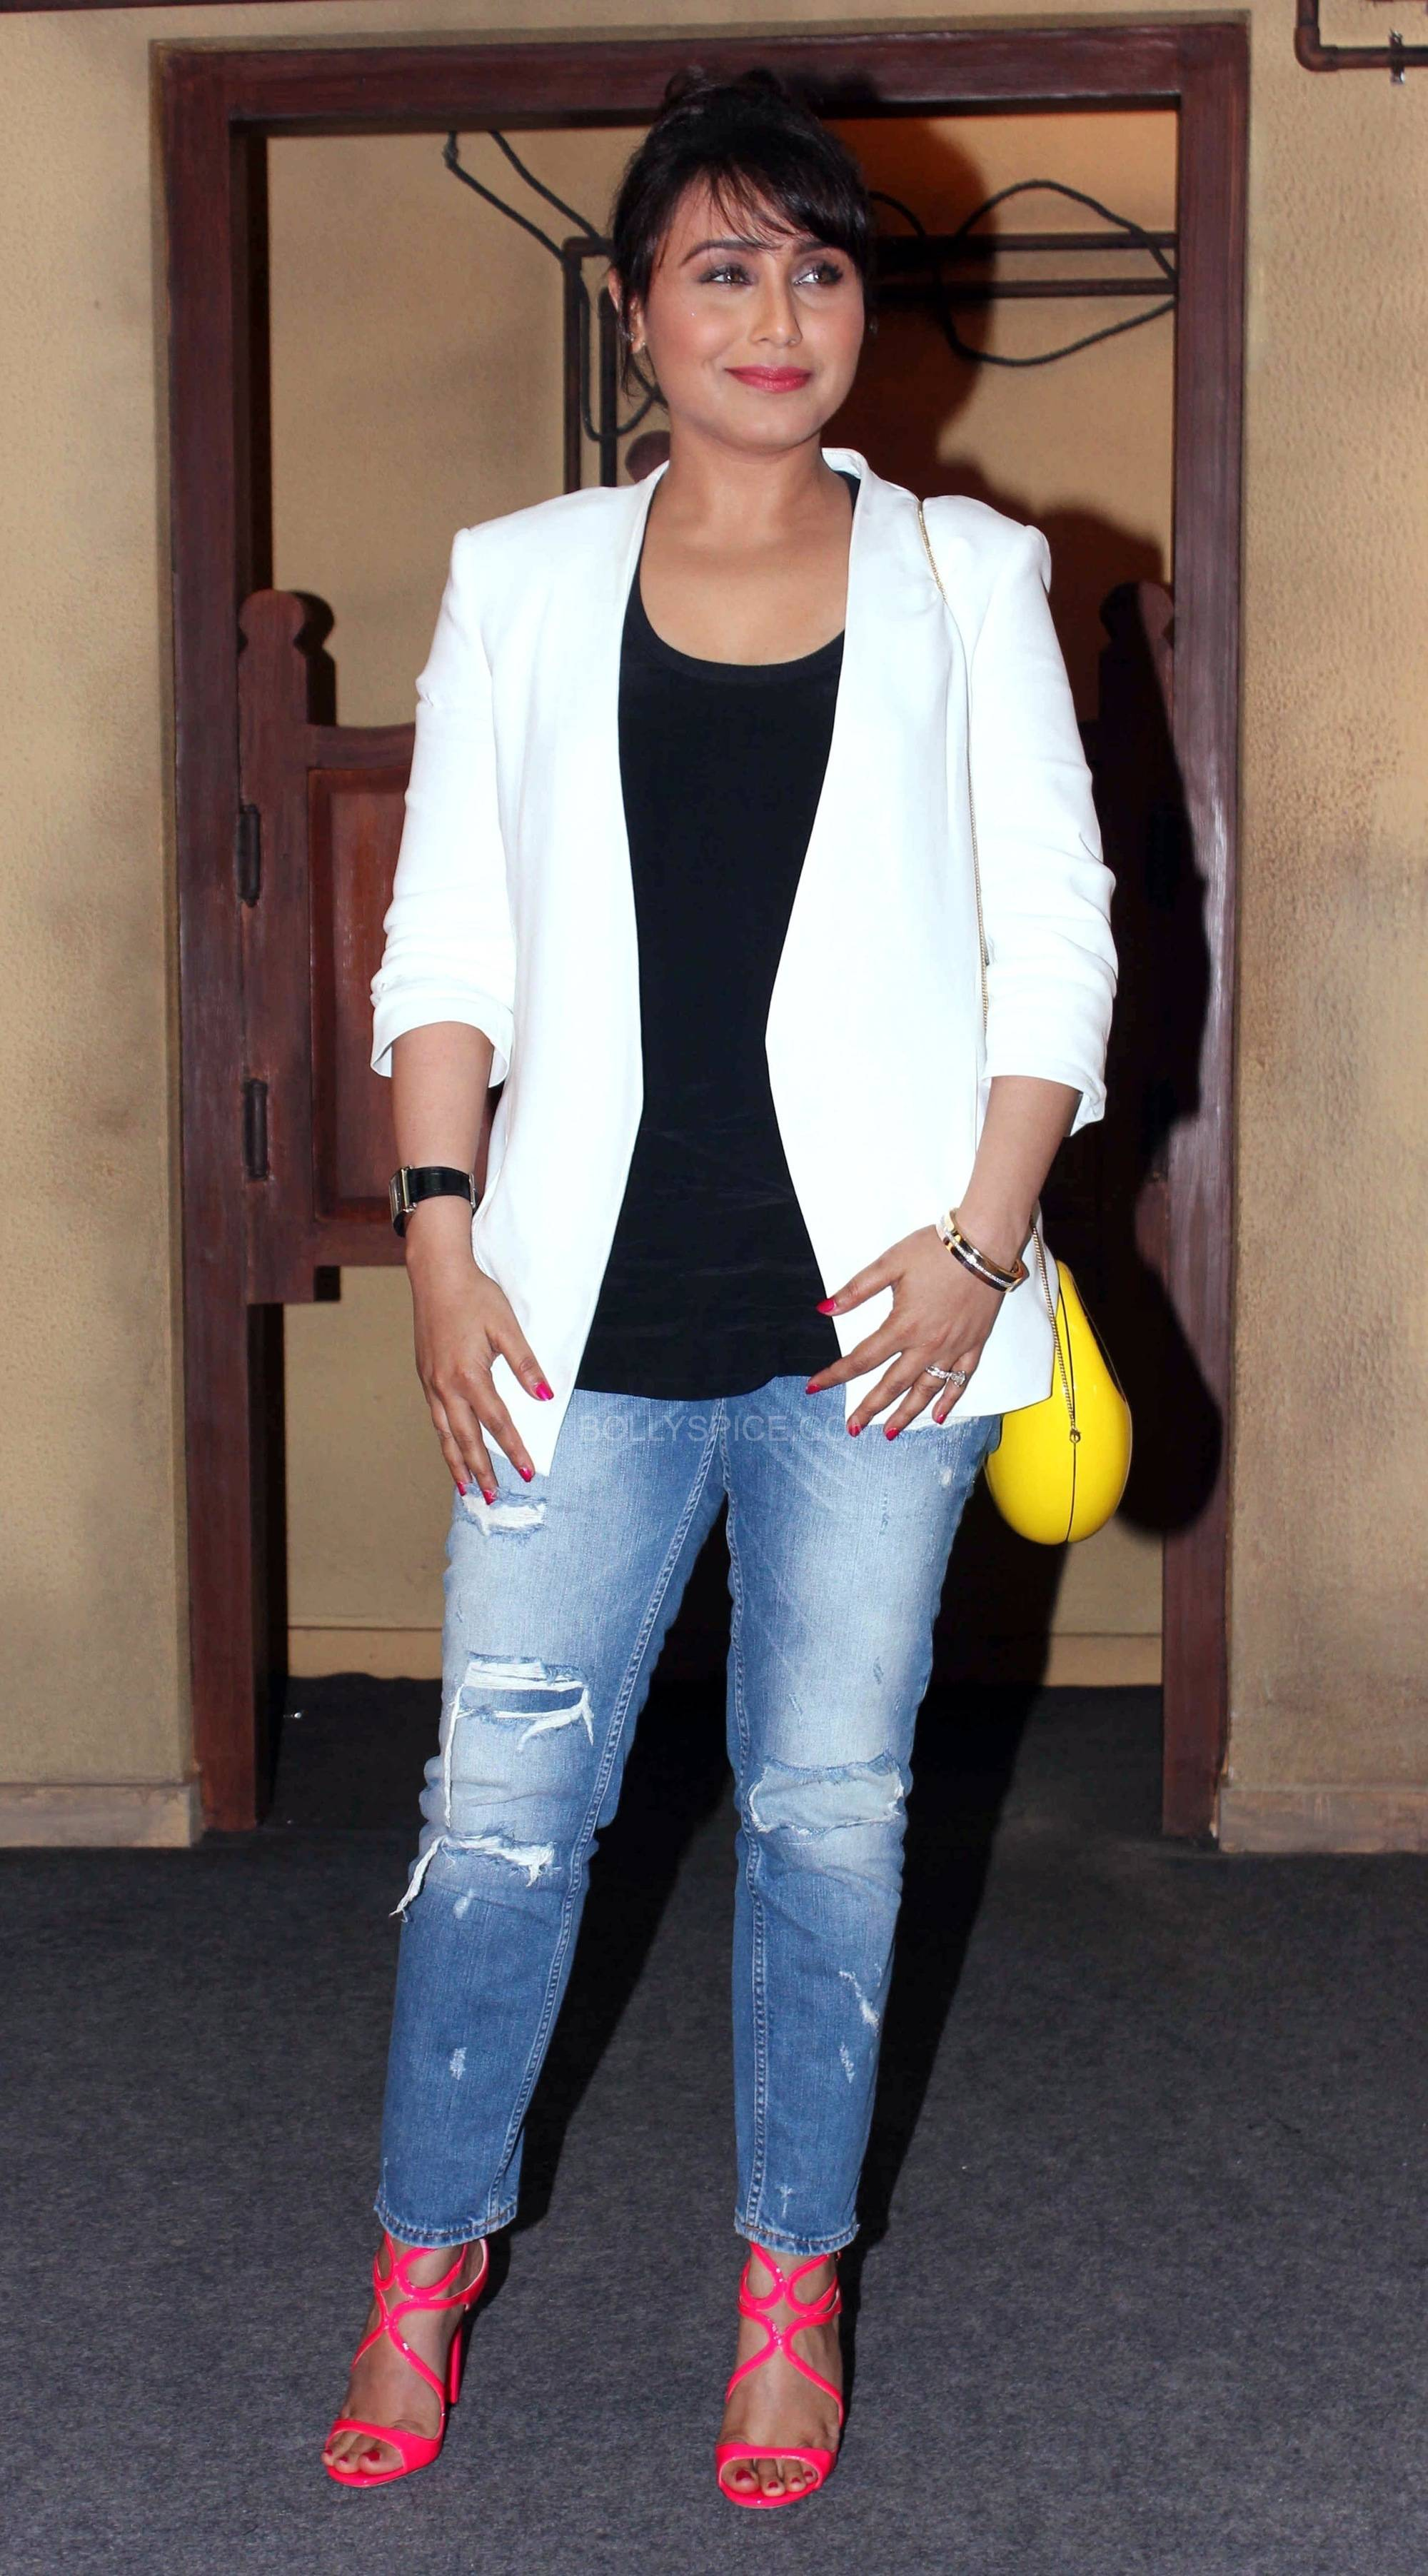 ranimardaanitrailerlaunch5 In Pictures: Rani at Mardaani Trailer Launch